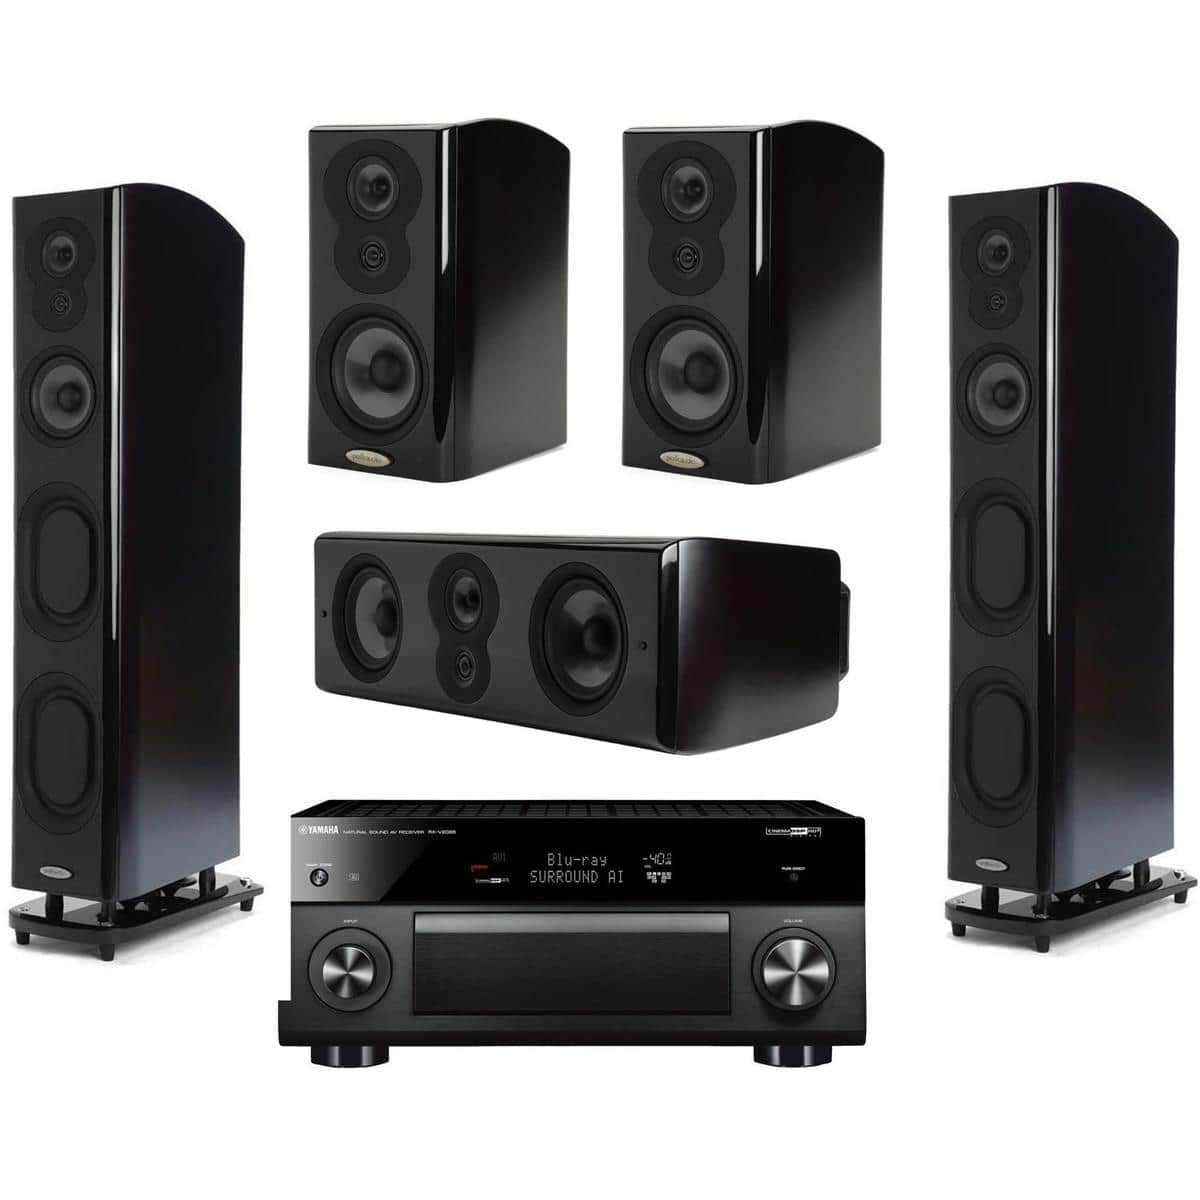 Polk LSI Speakers: 2x M707 + 2x M703 + LSi M706c + Yamaha RX-V2085BL Receiver $3199 + Free Shipping